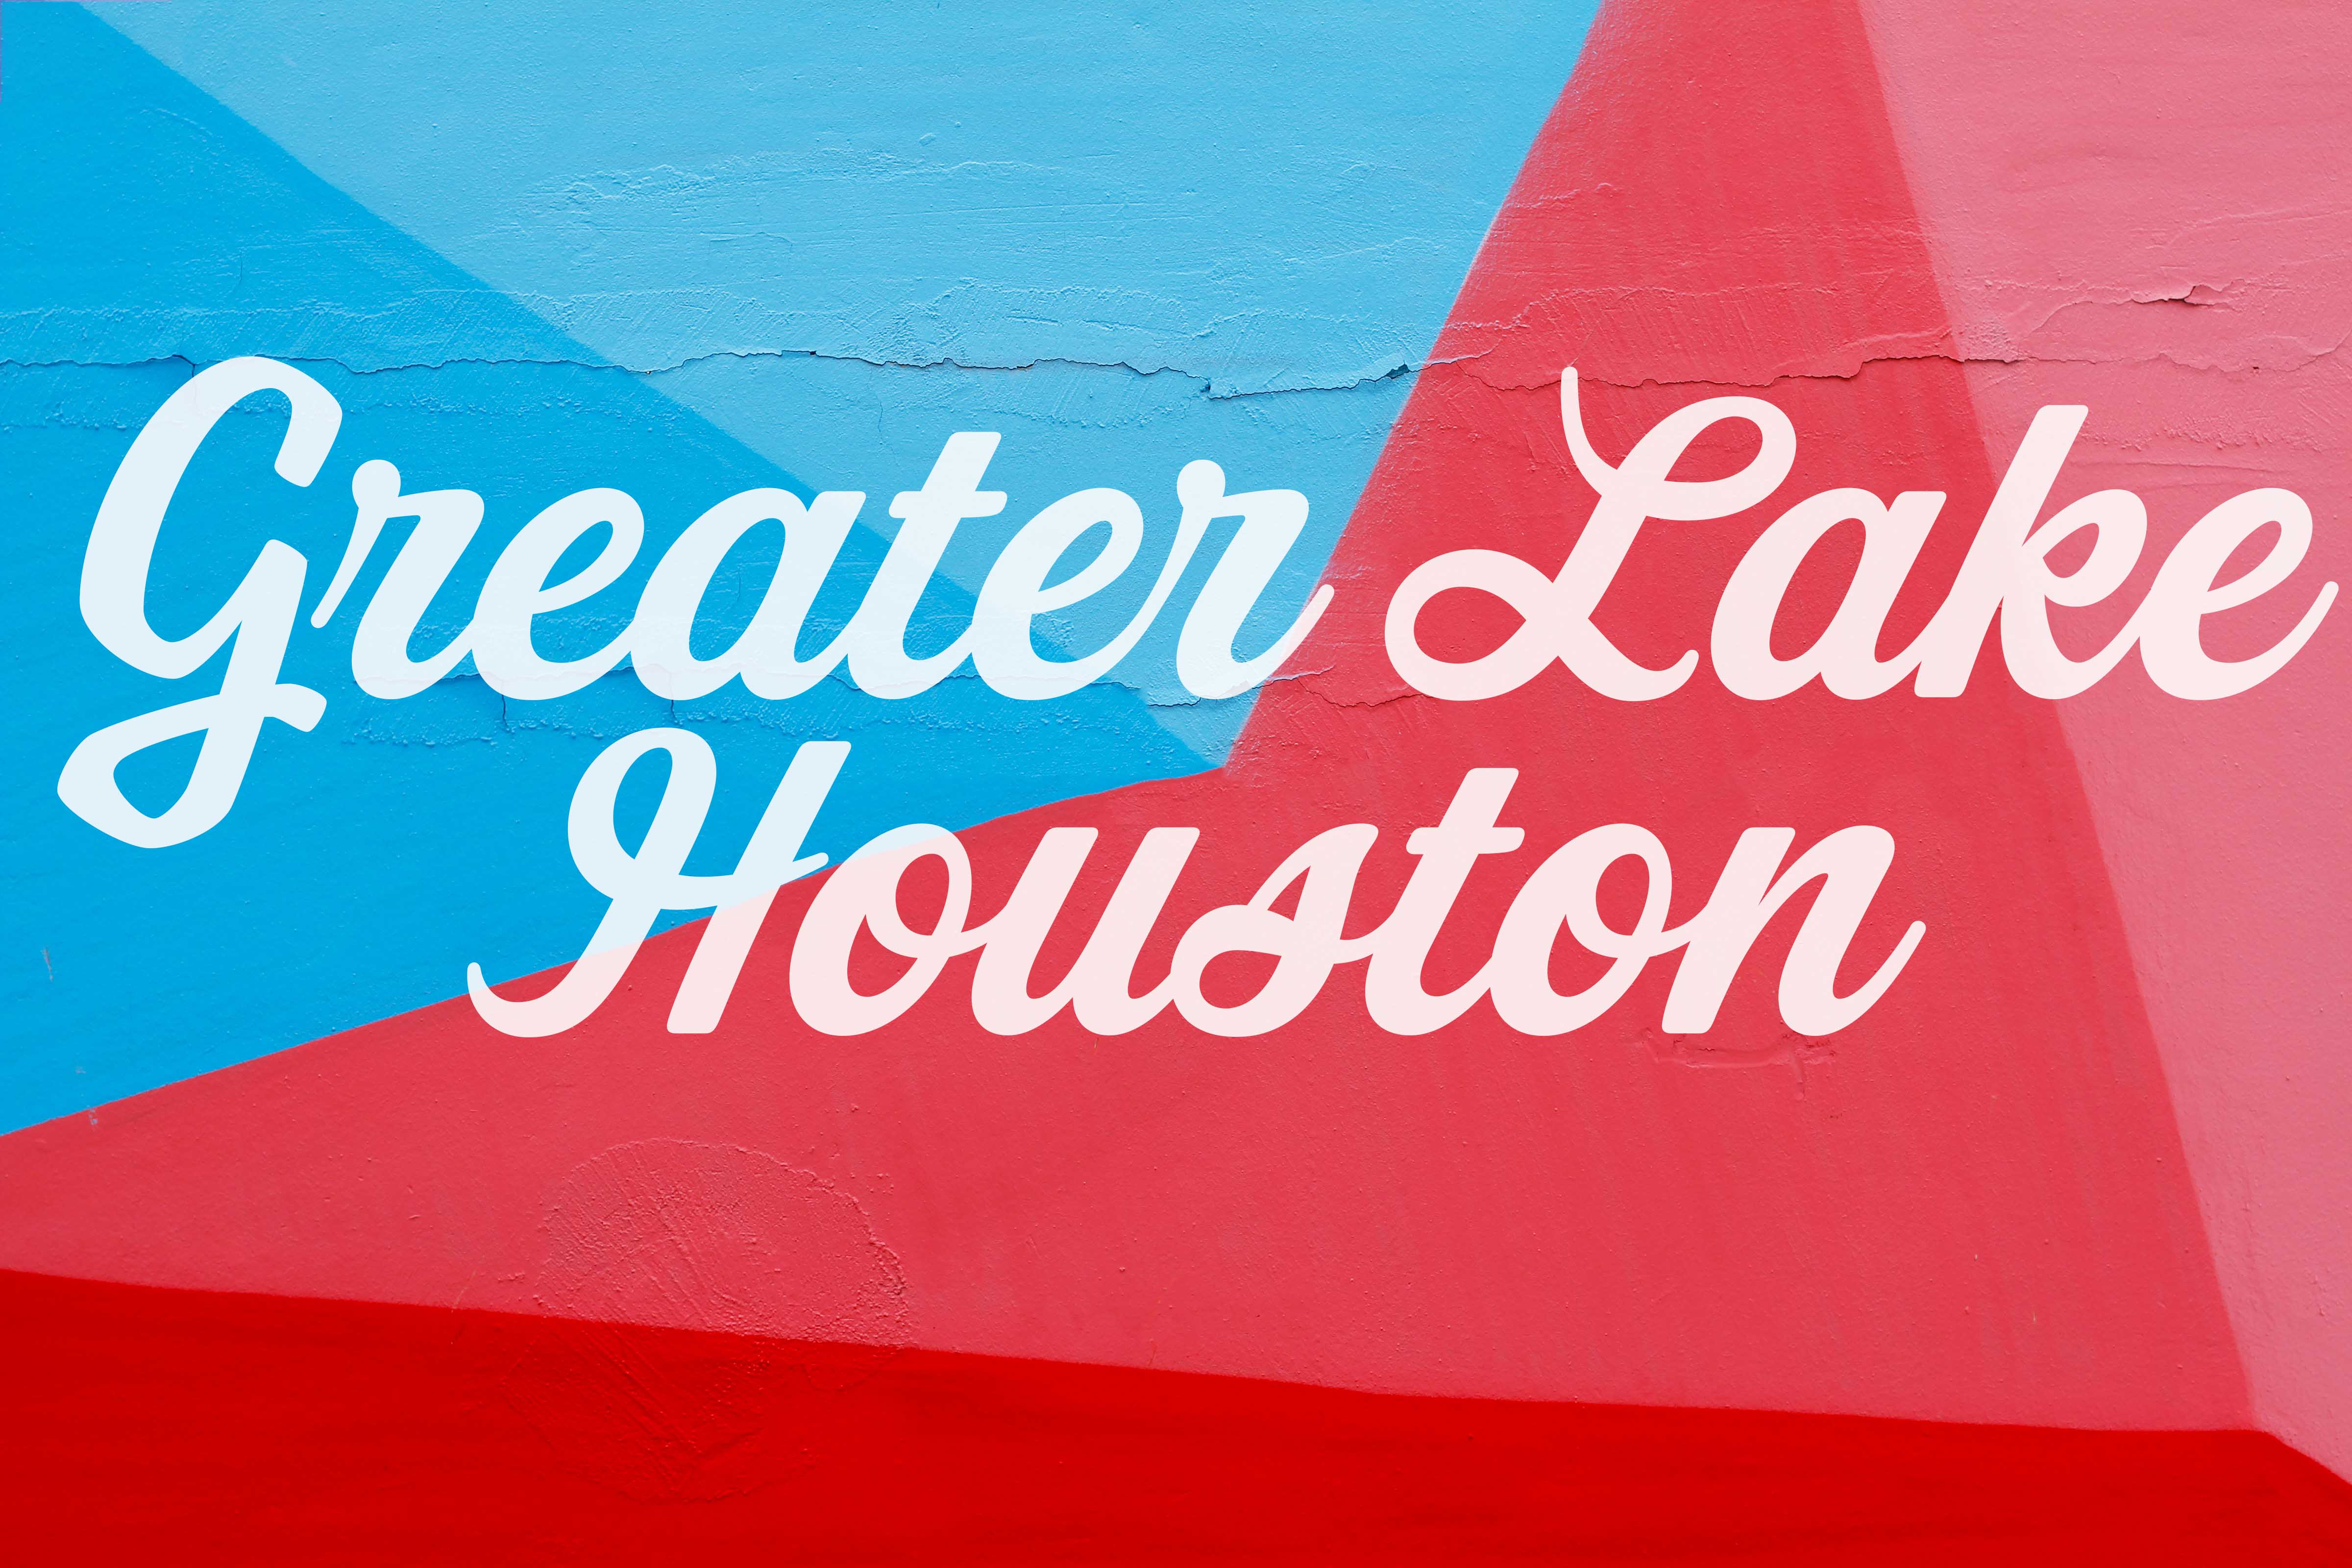 greater lakes houston wall